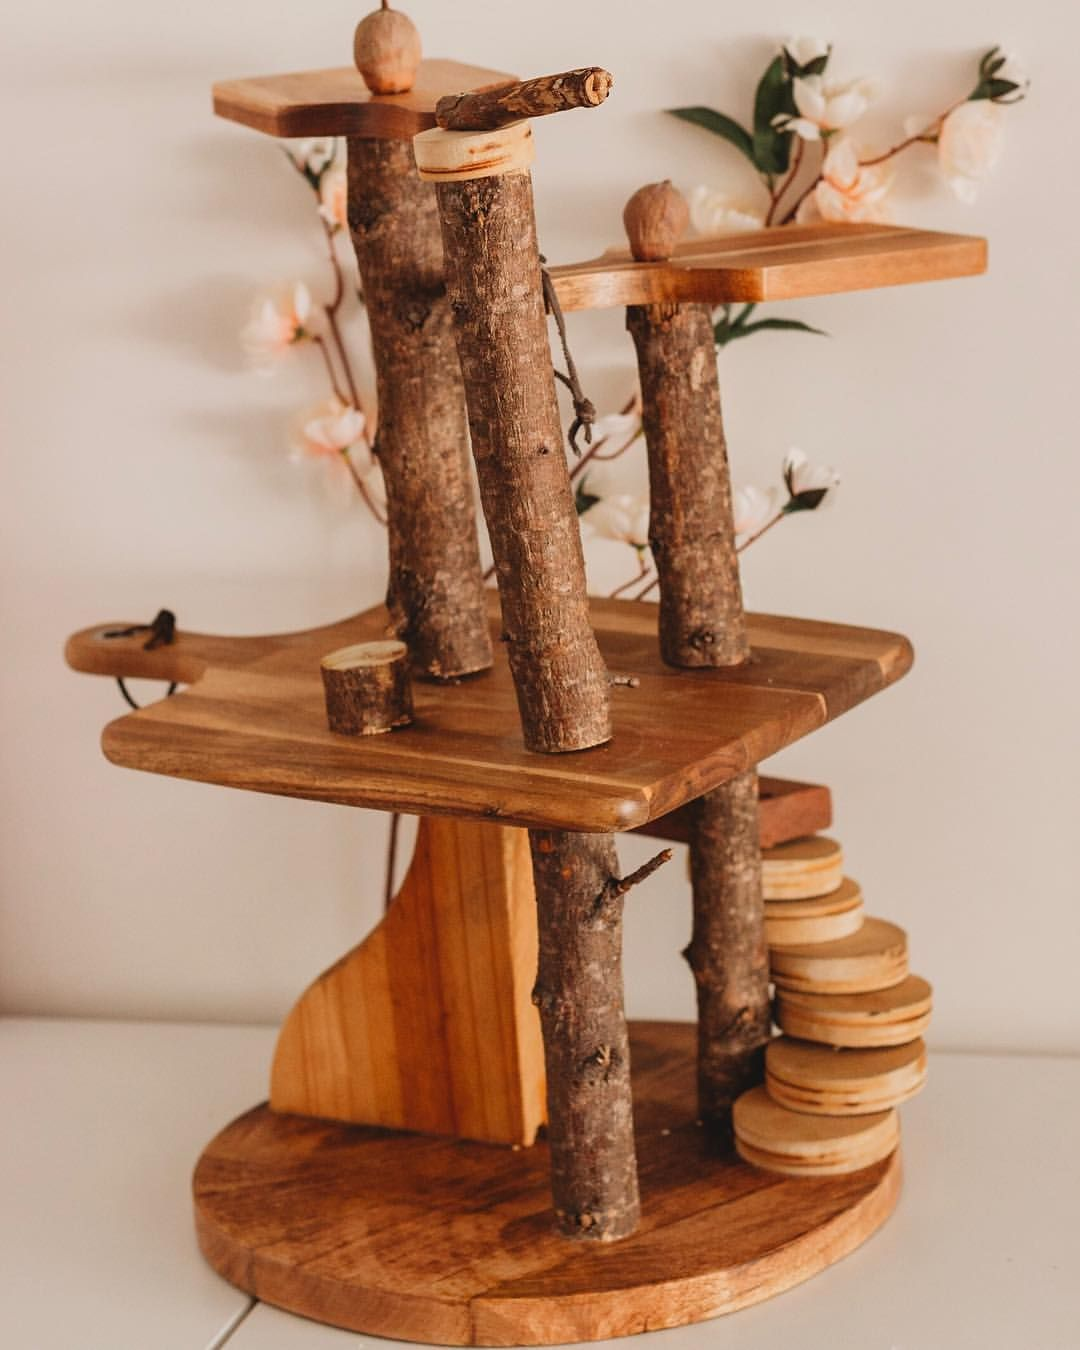 Made This Miniature Treehouse For My Daughter All Out Of Kmart